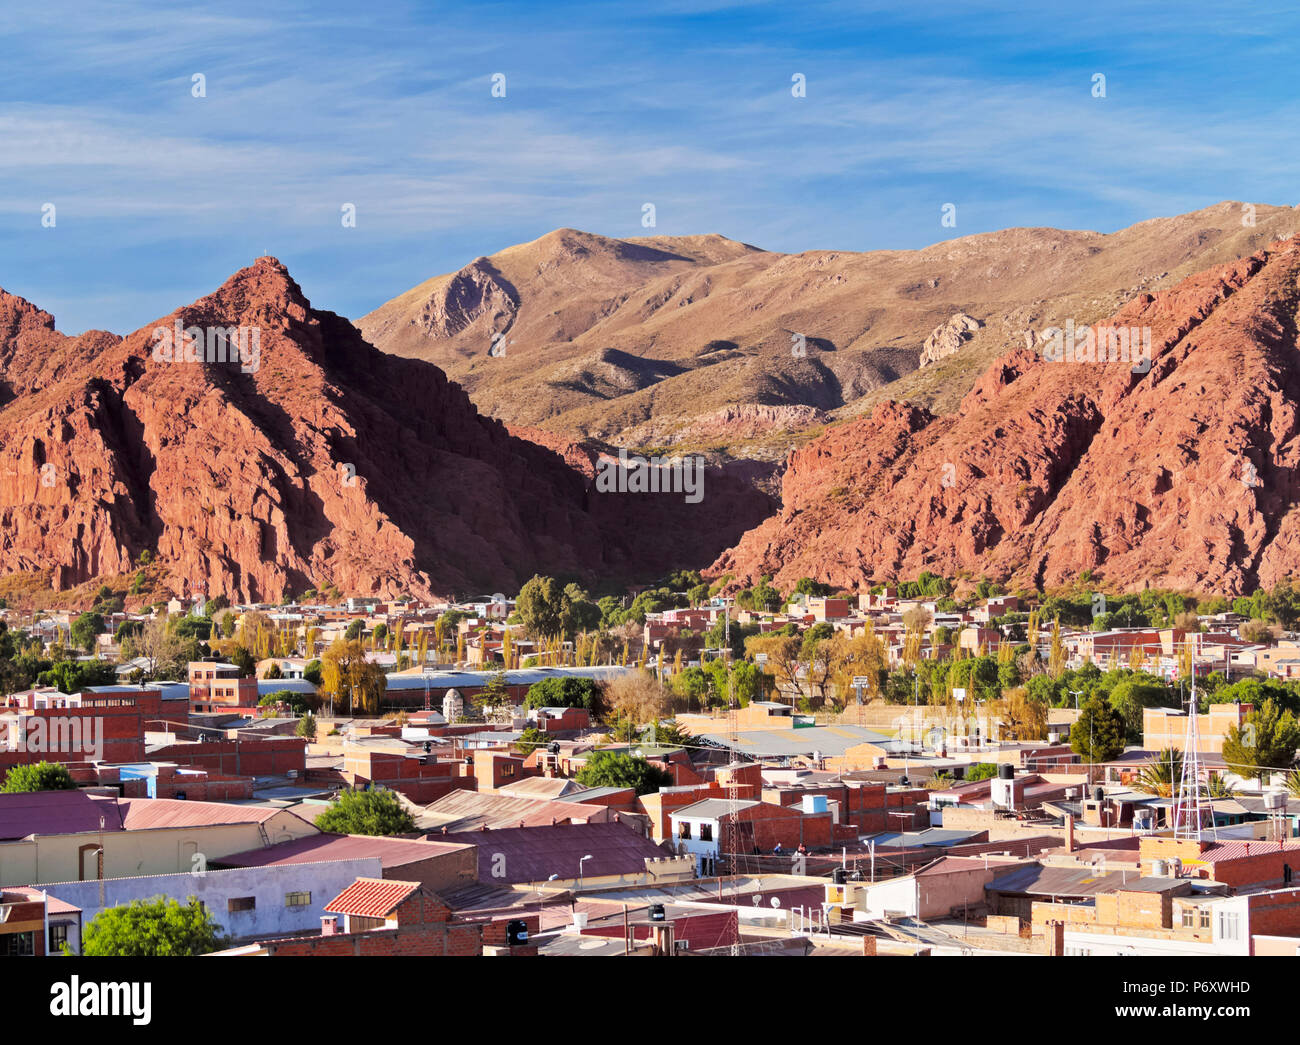 Bolivia, Potosi Department, Sud Chichas Province, Tupiza, Landscape of the mountains and the city of Tupiza viewed from the Mirador Corazon de Jesus. - Stock Image